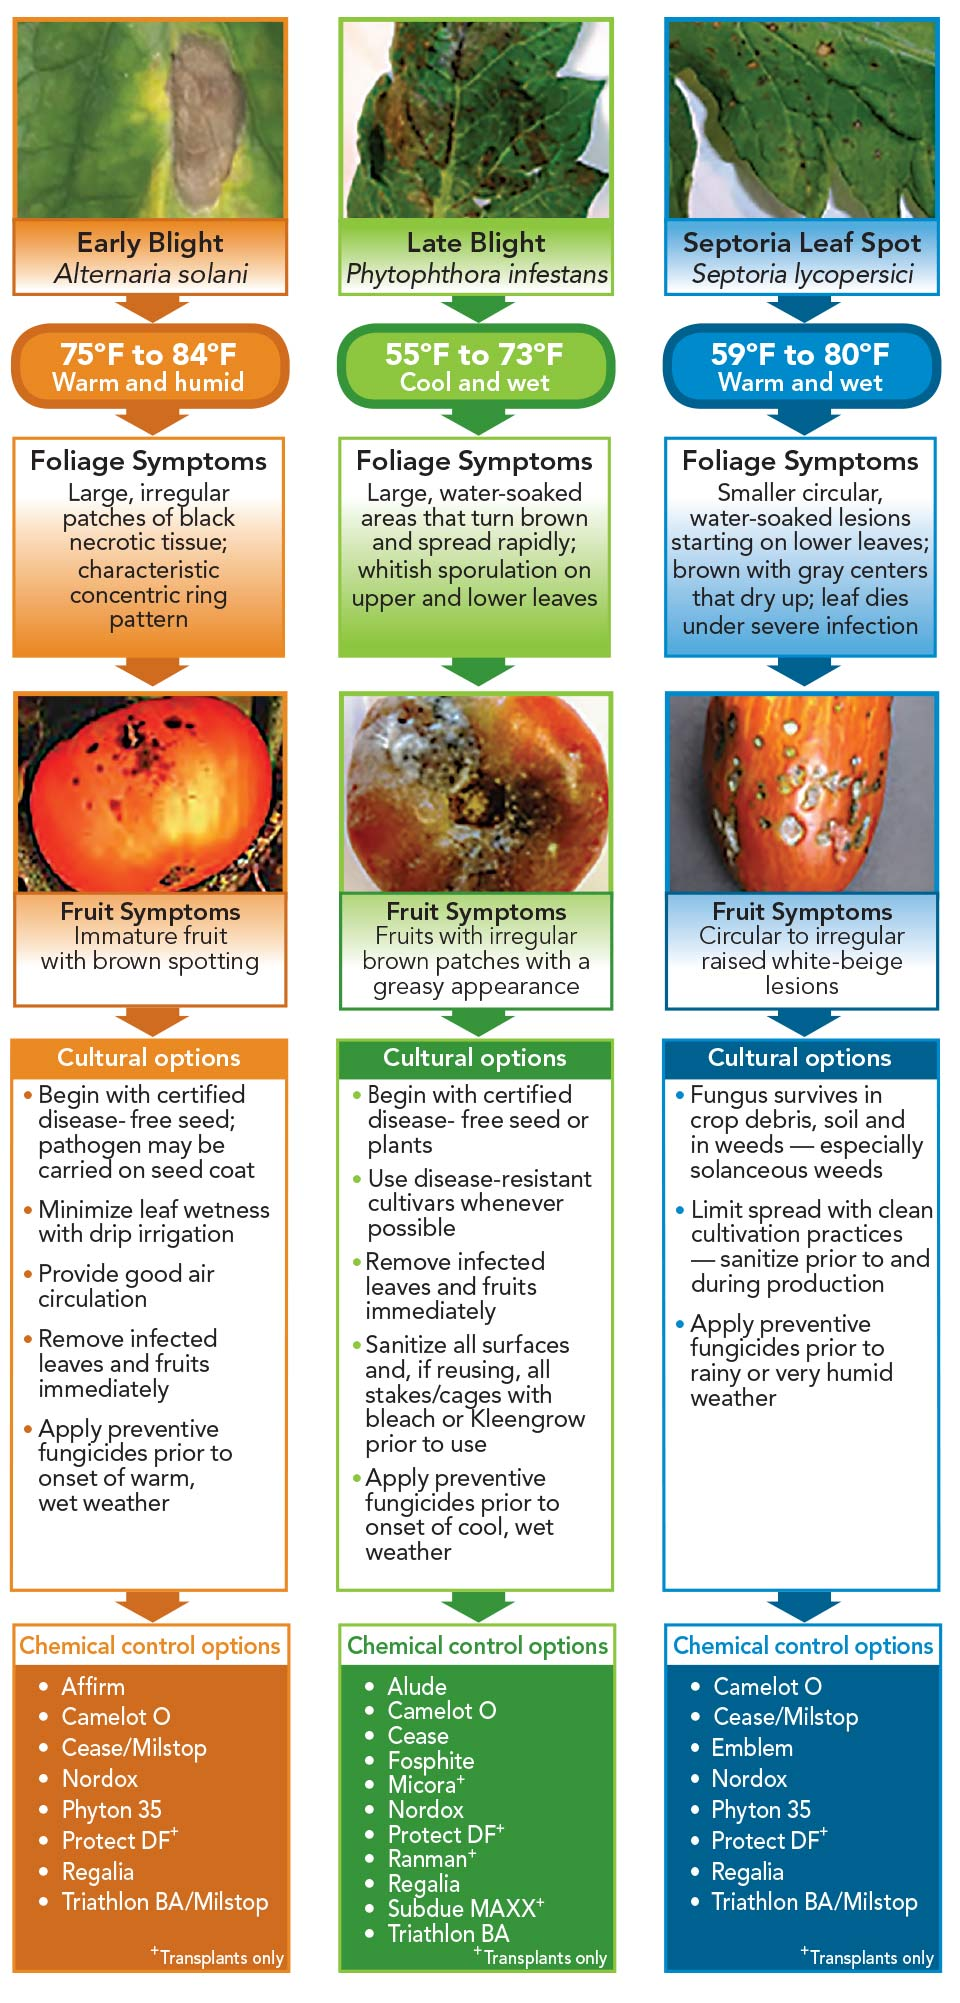 What to Do When Good Tomatoes Go Bad - Greenhouse Grower